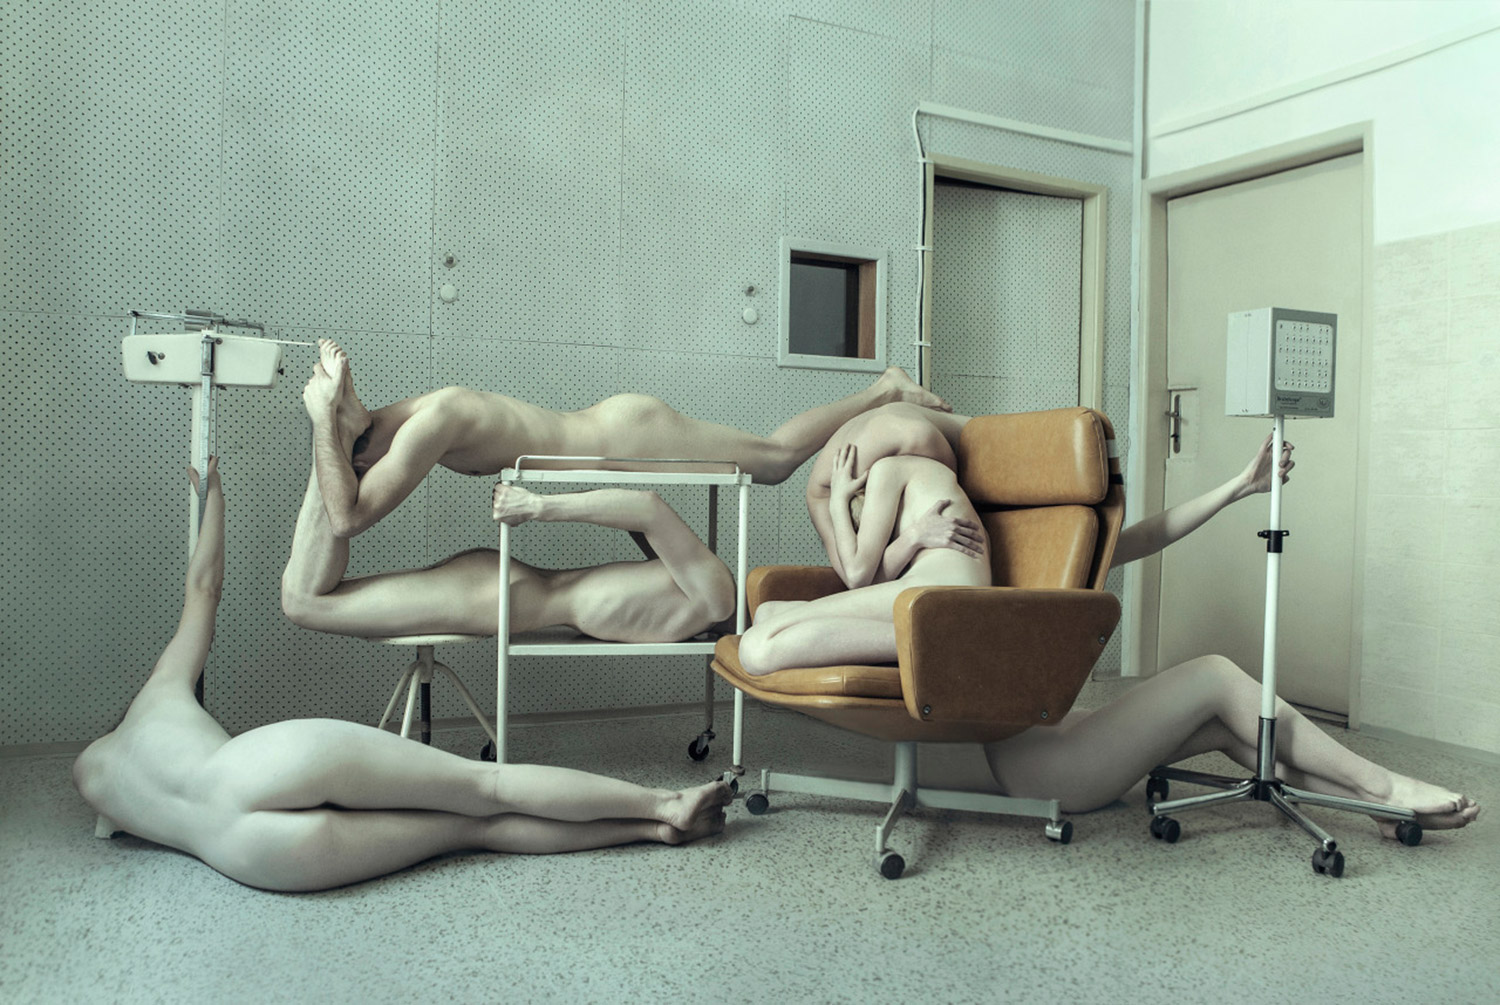 Evelyn Bencicova, Ecce Homo, photo of nude bodies draped over hospital equipment